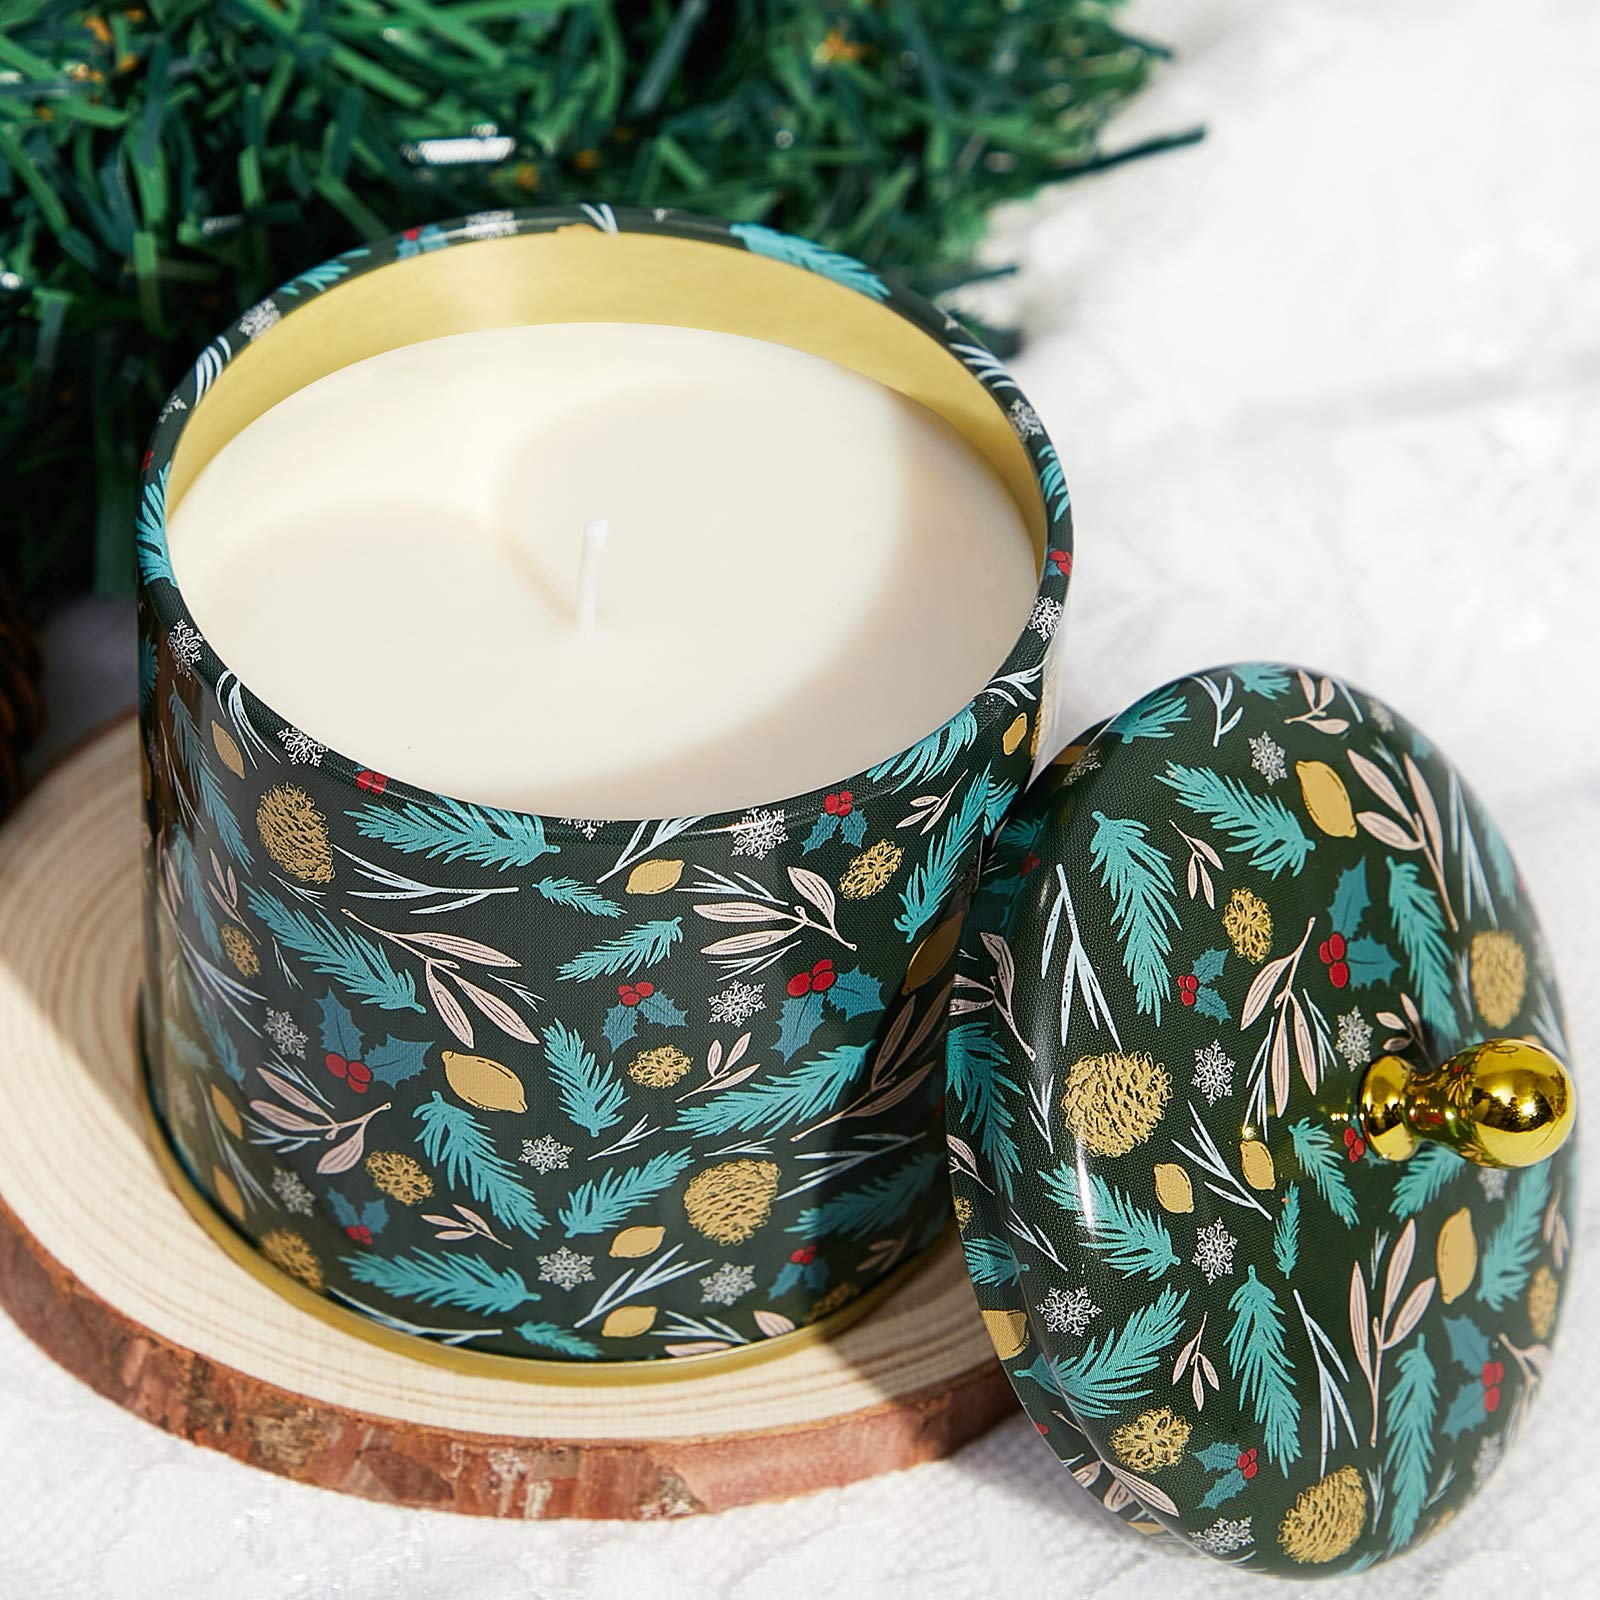 Gift Box Amber jar scented candle Moss and Sage House Warming gift BALSAM CEDAR Fir Pine Soy Candle Quiet Forest Home Decor